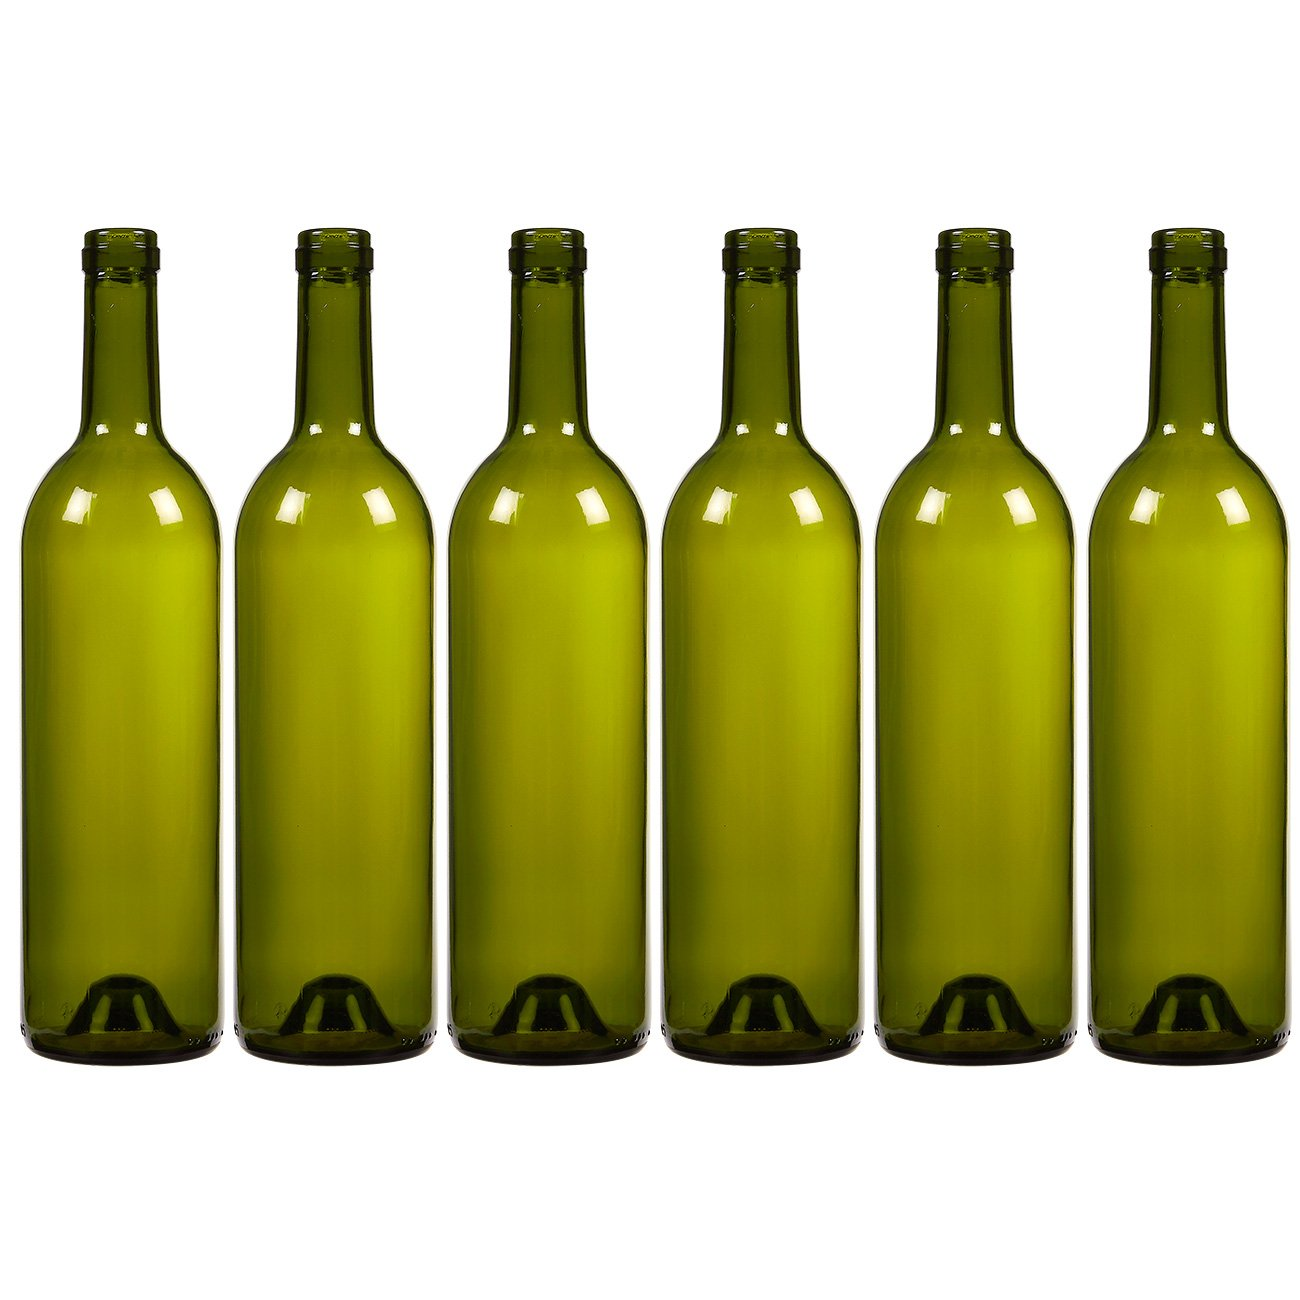 6-Pack Wine Glass Bottles - Empty, Recyclable Bordeaux Bottles for Home Brewing Alcohol, Wine Supplies, Green by Juvale